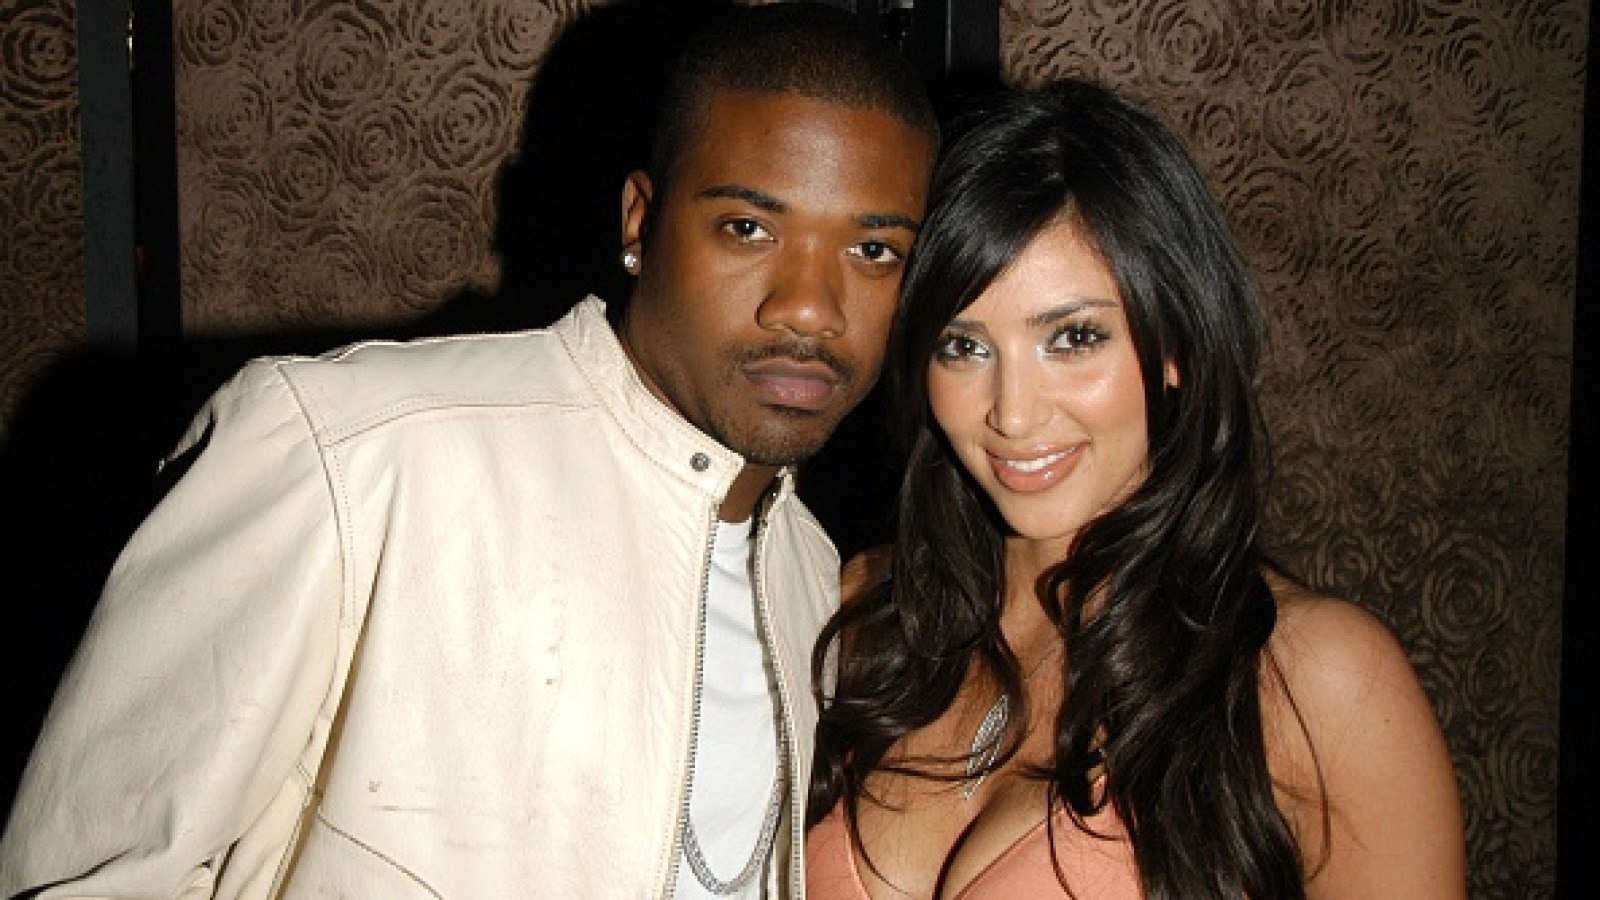 Ass kim kardashian dating ray j girl sex picture